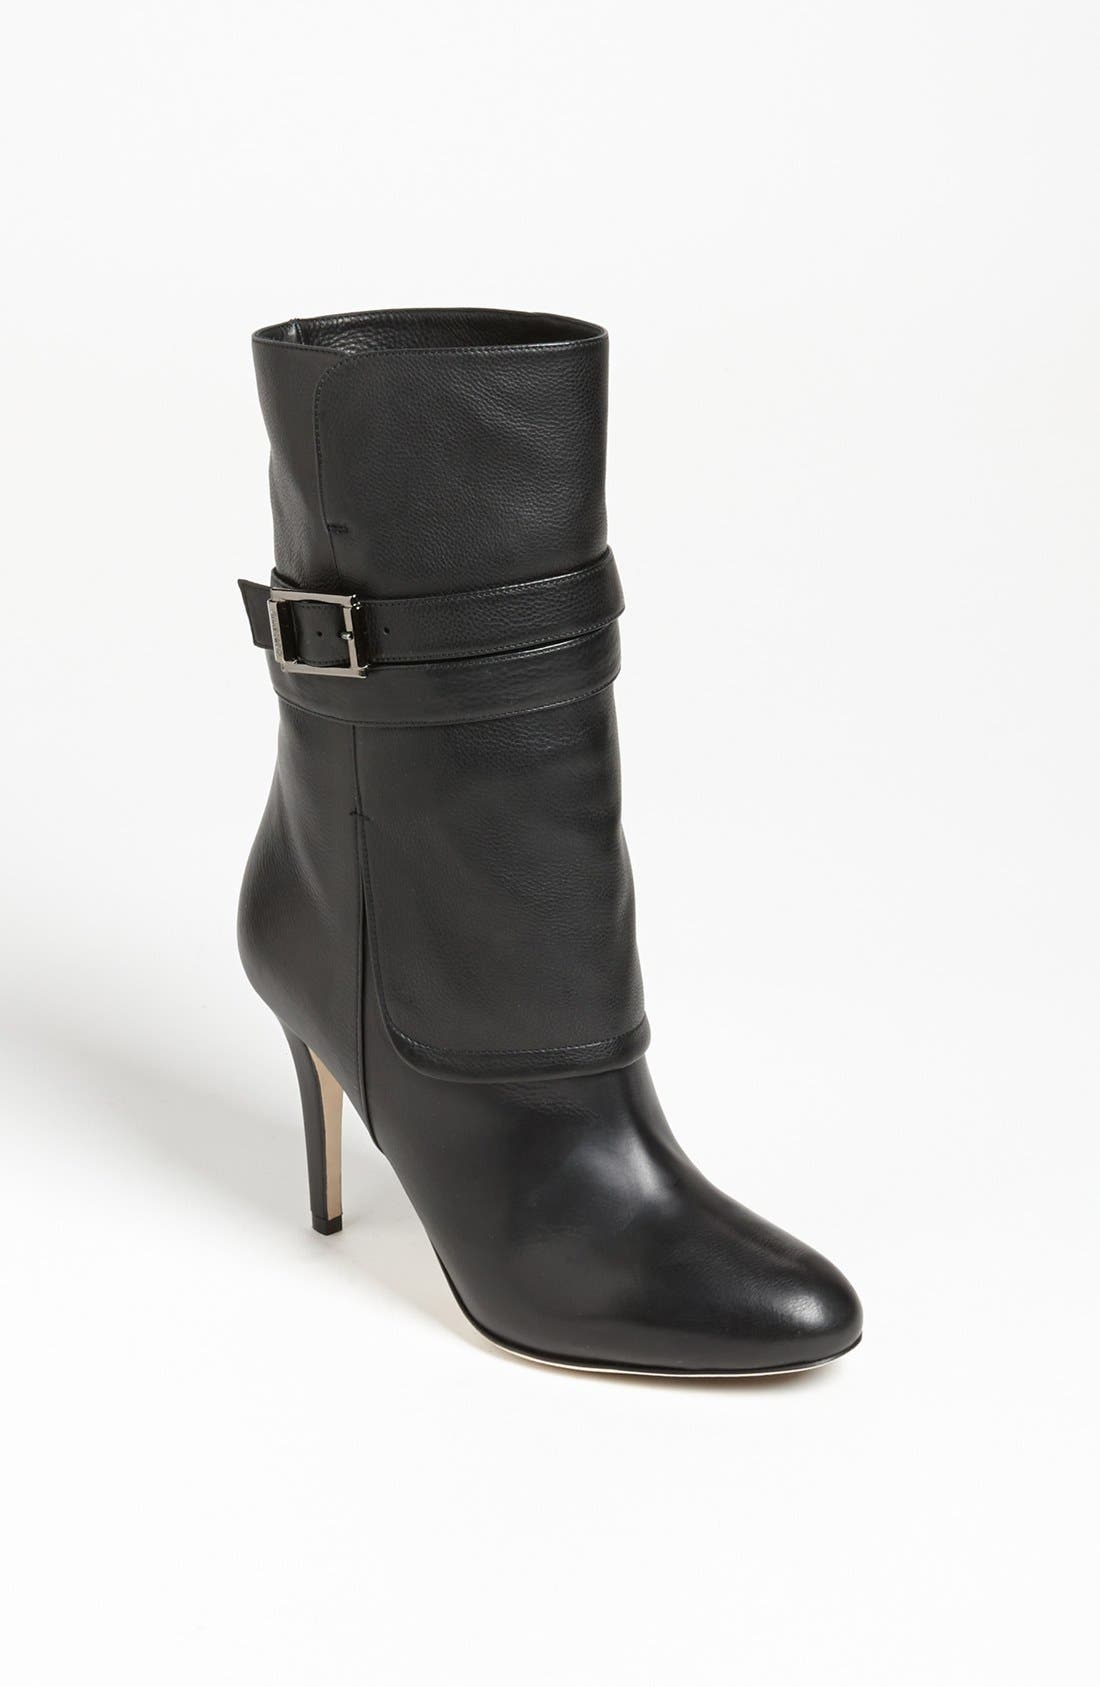 Alternate Image 1 Selected - Jimmy Choo 'Ballad' Boot